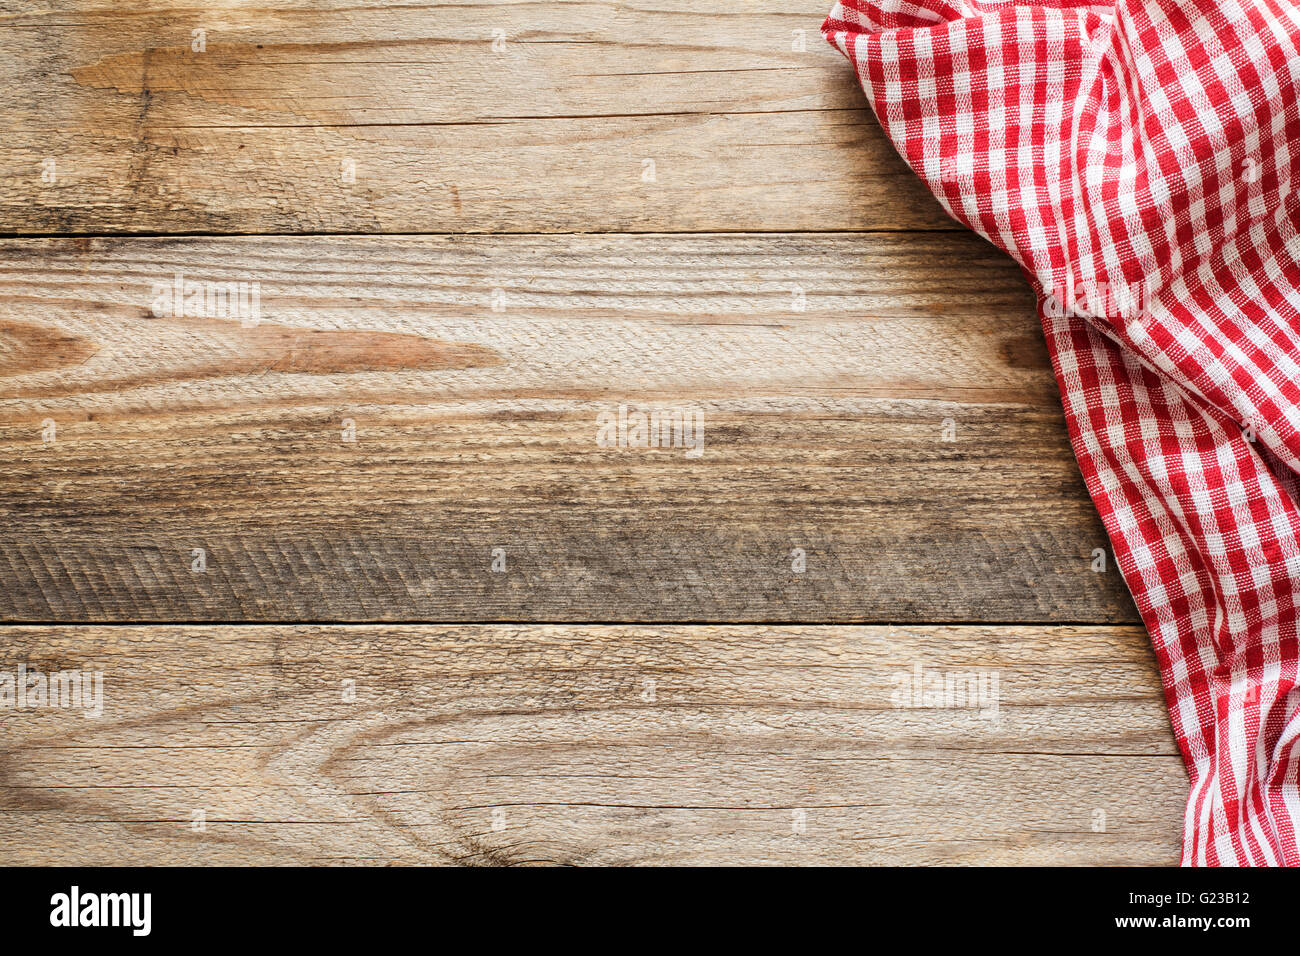 Dinner Table Cover Images 10 Ideas For Outdoor Parties  : wooden background with textile cooking food pizza wooden table background G23B12 from www.favefaves.com size 1300 x 956 jpeg 358kB